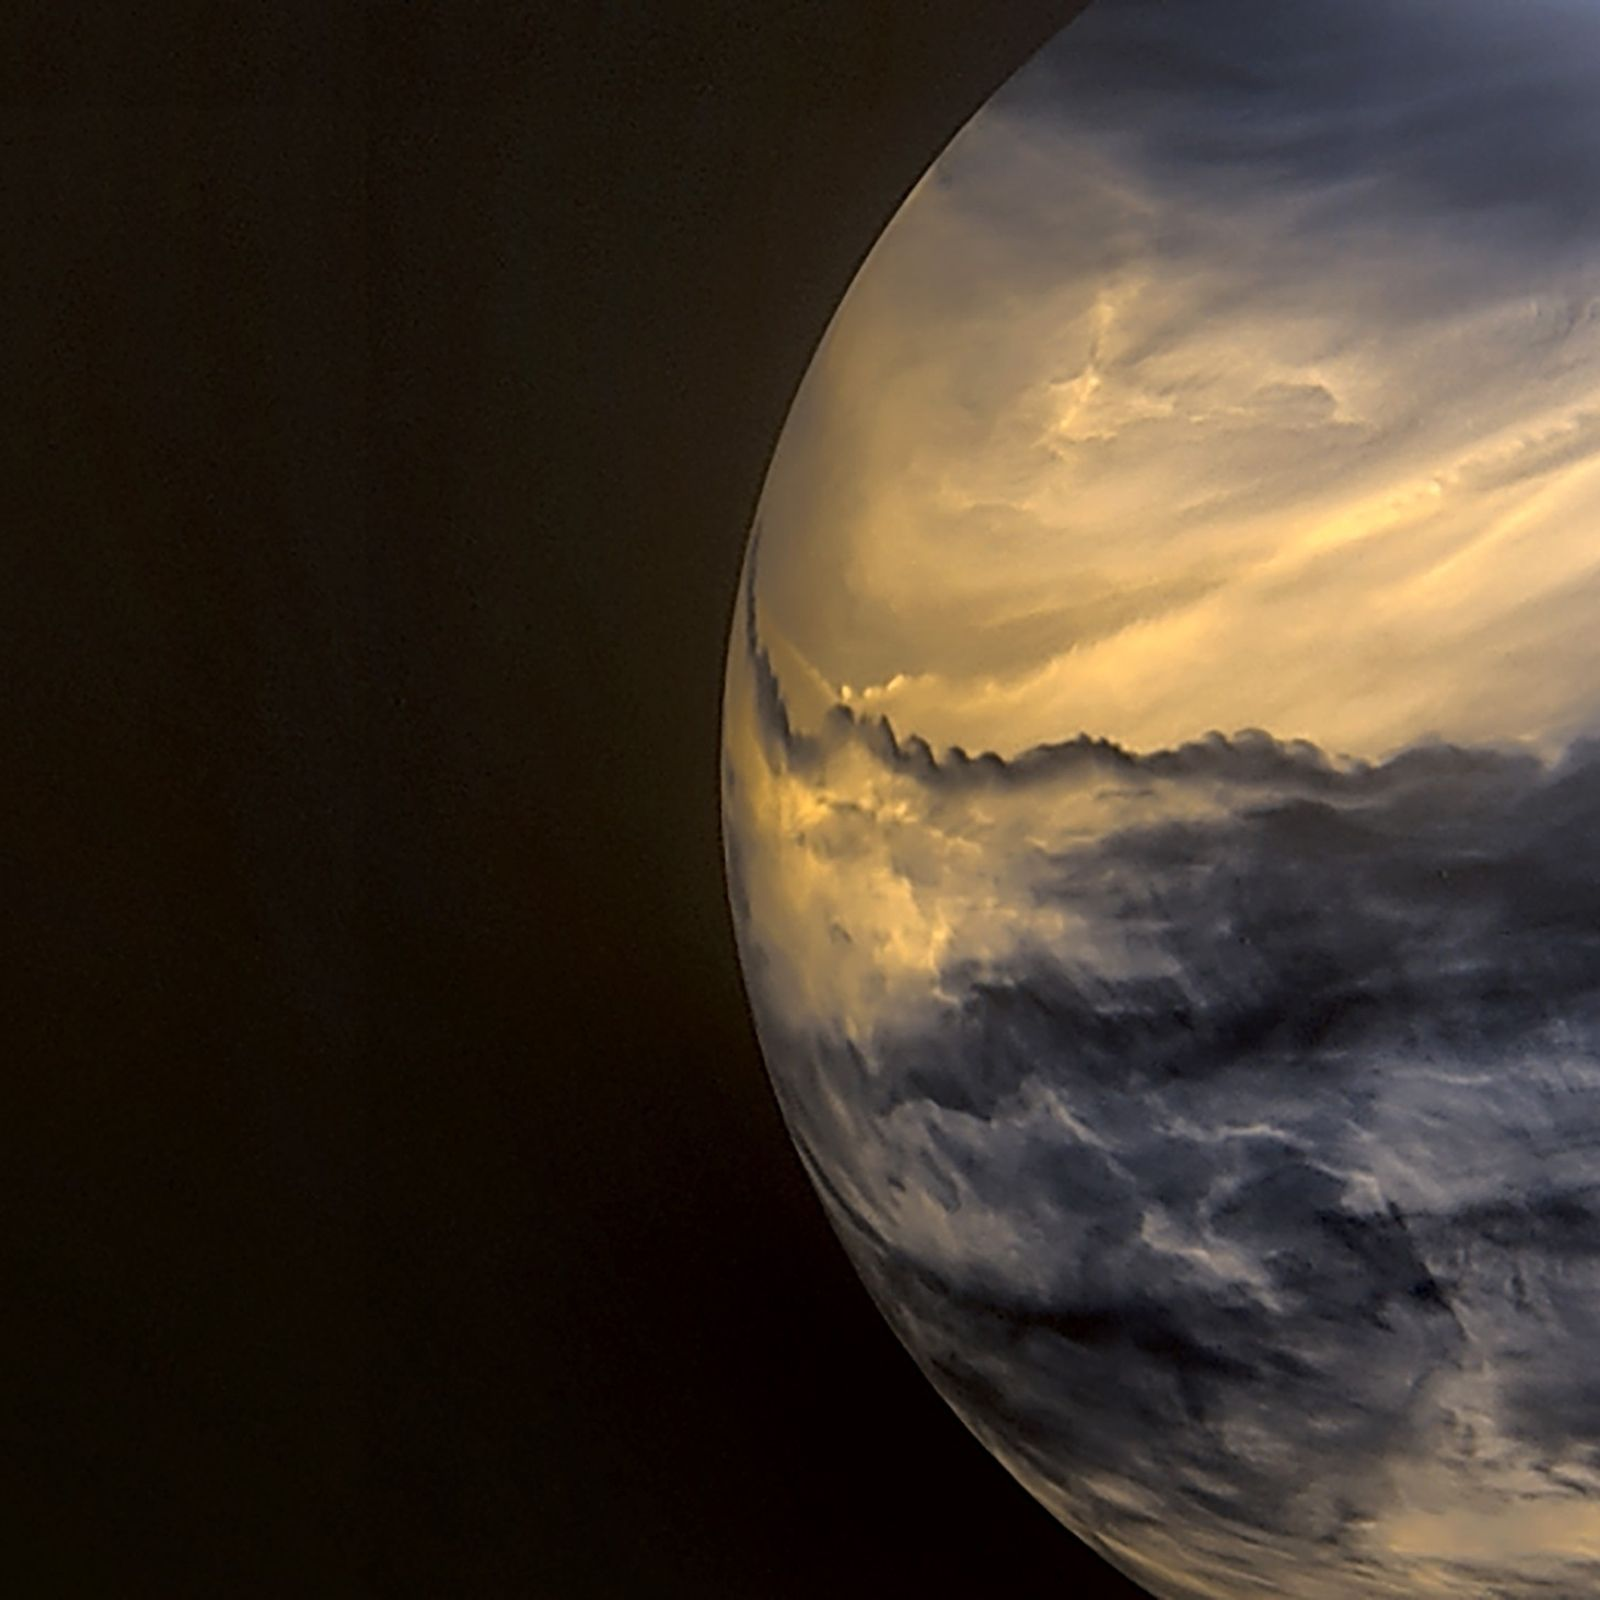 Dark higher-altitude clouds obscure the brighter mid-altitude clouds in this image of Venus taken by an ...